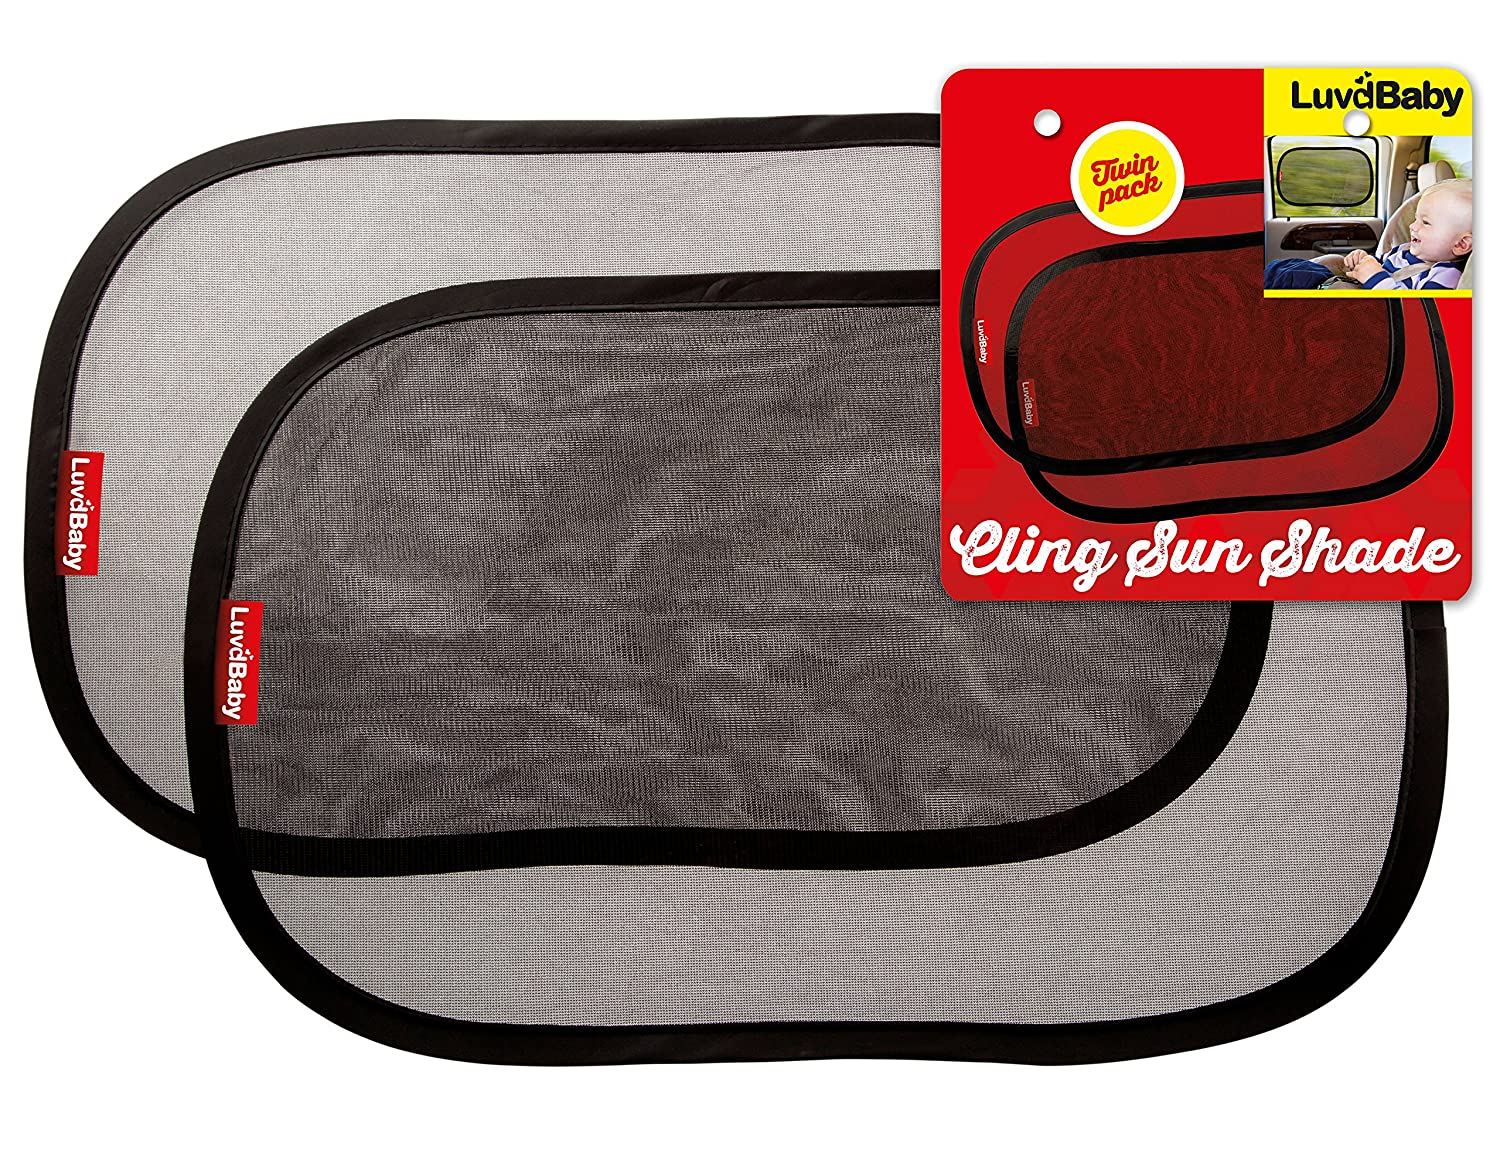 Samfolk Car Sun Shades for Baby (2 PACK) Car Blinds for Car Windows, Car Sun Shield Screens for Children 80 GSM for Maximum UV Rays/Sun/Glare Protection, Universal Size for All Cars (Fish)